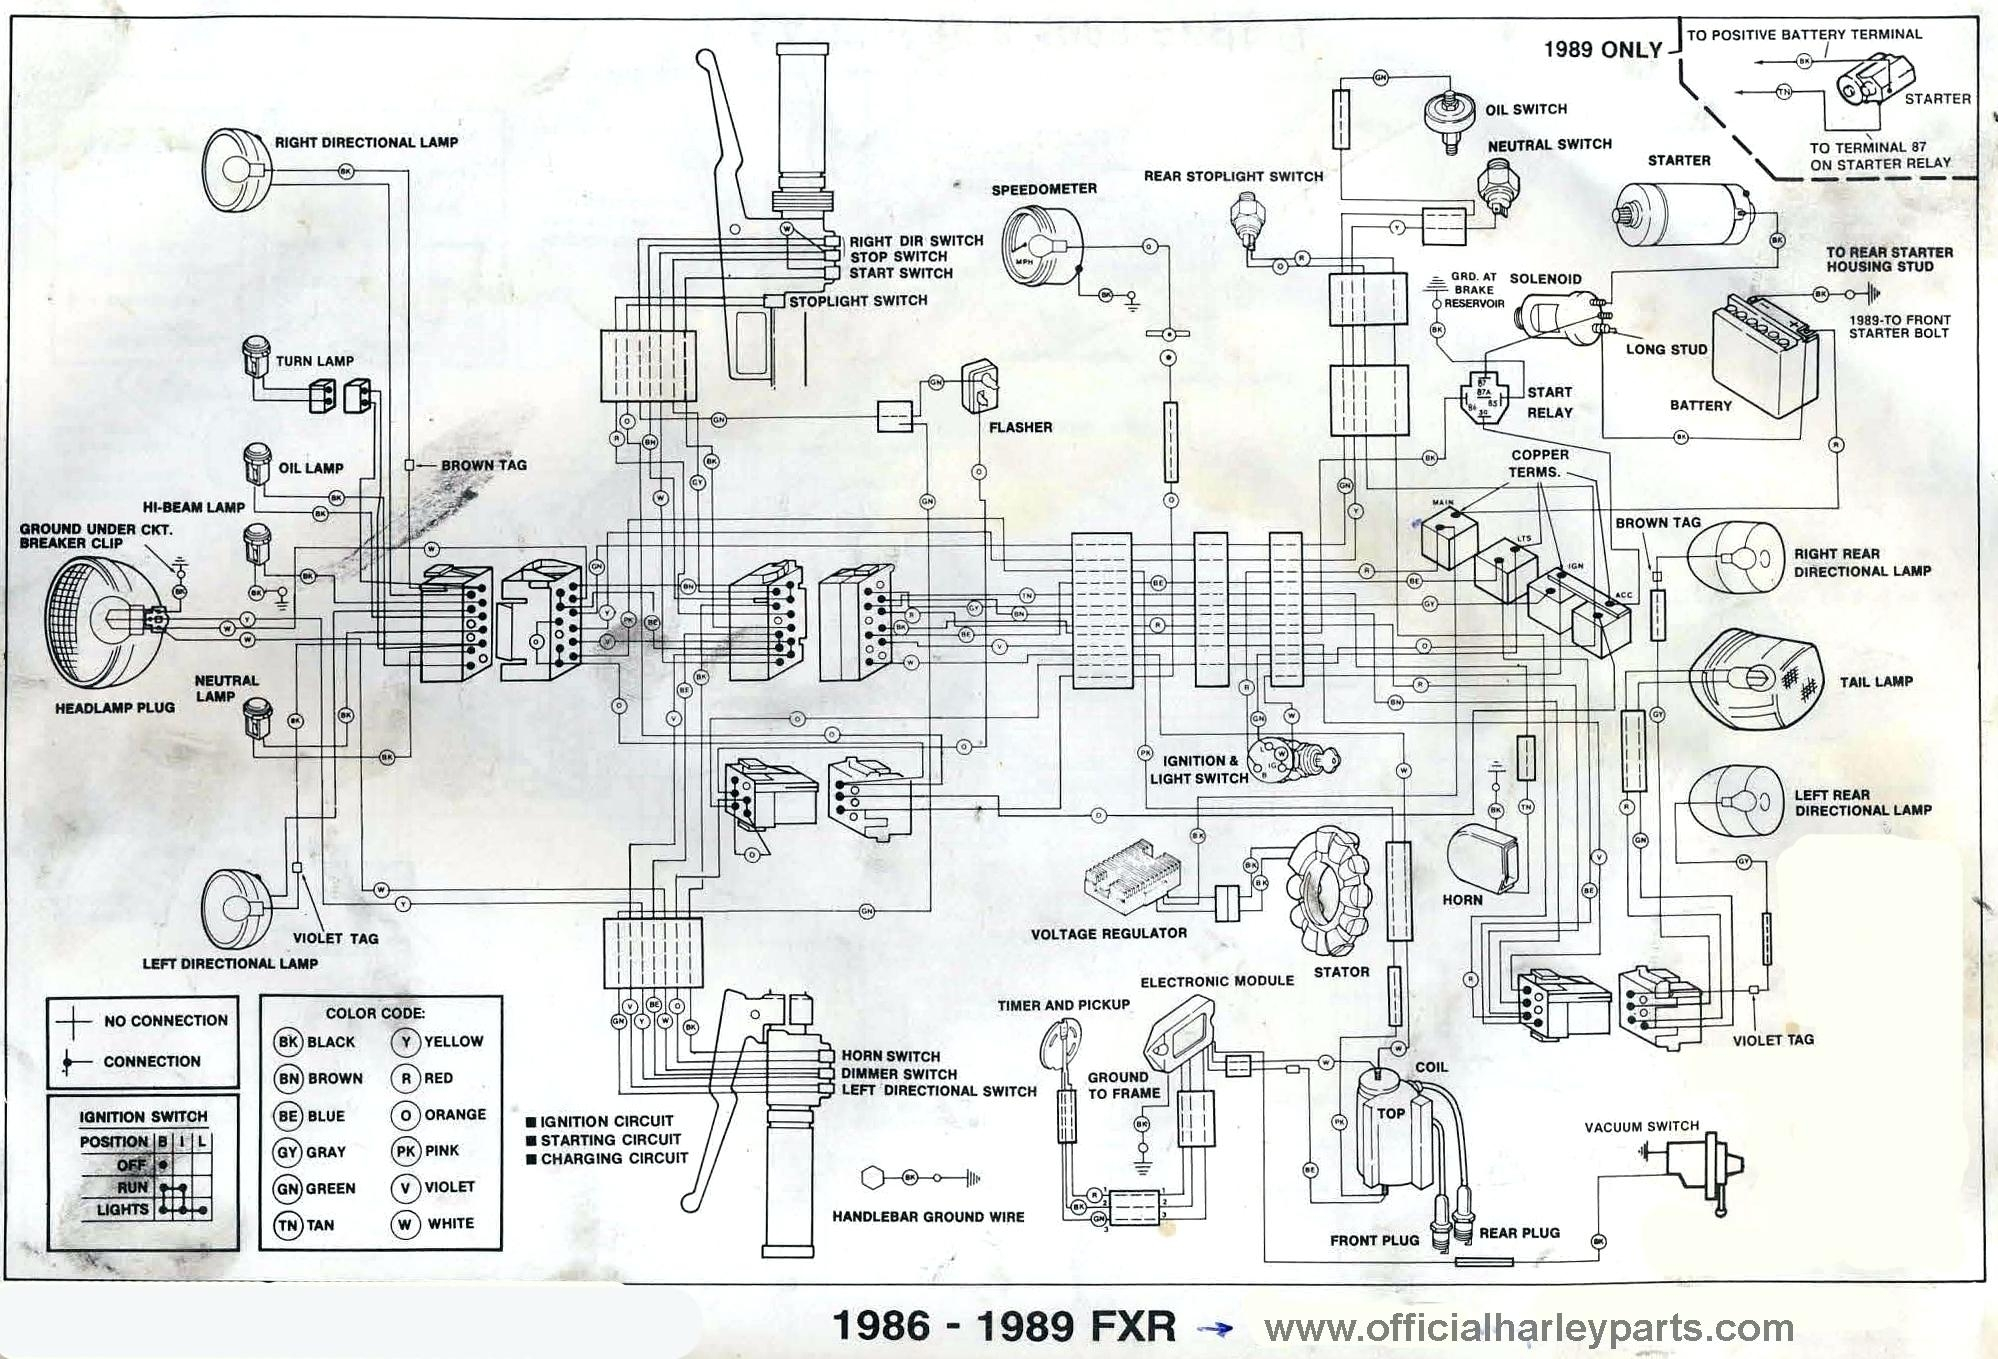 Wiring Diagram for Harley Davidson softail | Free Wiring Diagram on ford speaker wiring diagram, harley davidson fuel pump problems, harley davidson audio input, harley davidson window, harley davidson rims, harley davidson stereo amplifier, sony speaker wiring diagram, harley davidson engine, mazda speaker wiring diagram, harley davidson closeouts, harley davidson turbo, harley davidson coolant,